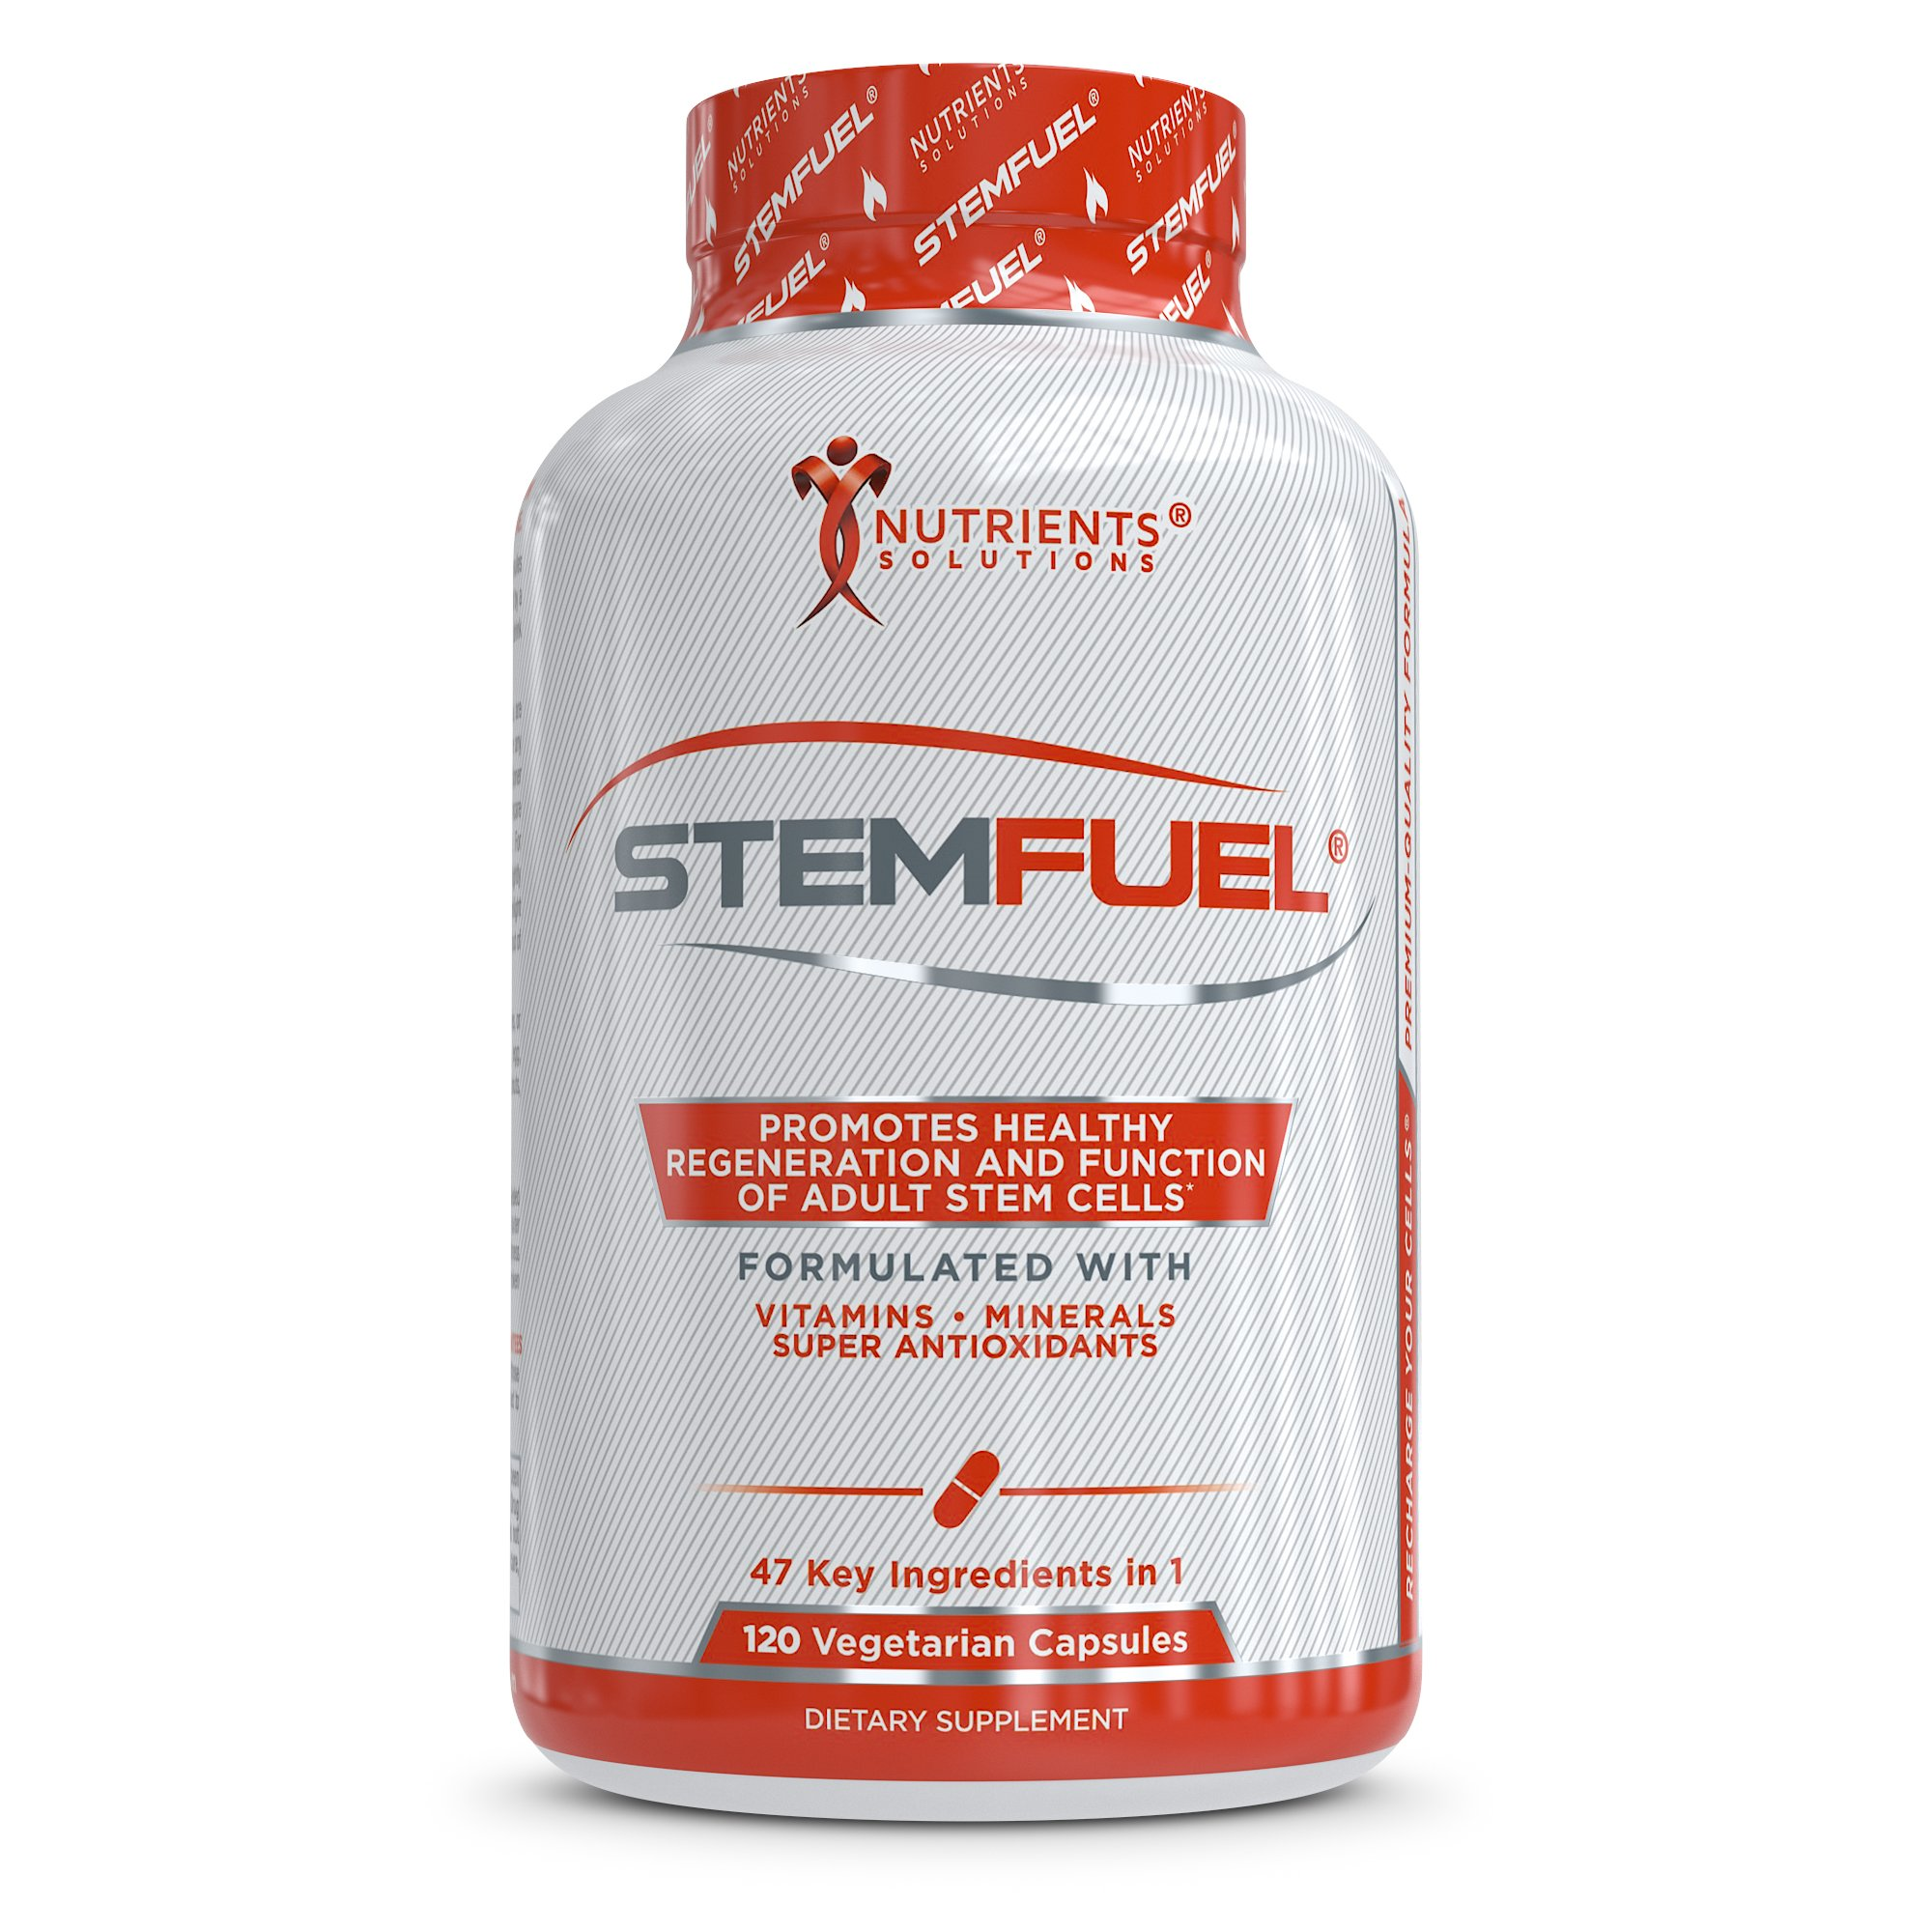 STEMFUEL - Advanced Cell, Brain, Anti-Aging and Deep Immune System Support Supplement with Daily Multivitamins for Men and Women - Promotes Healthy Energy, Focus, and Cognitive Function - 120 Veg Caps